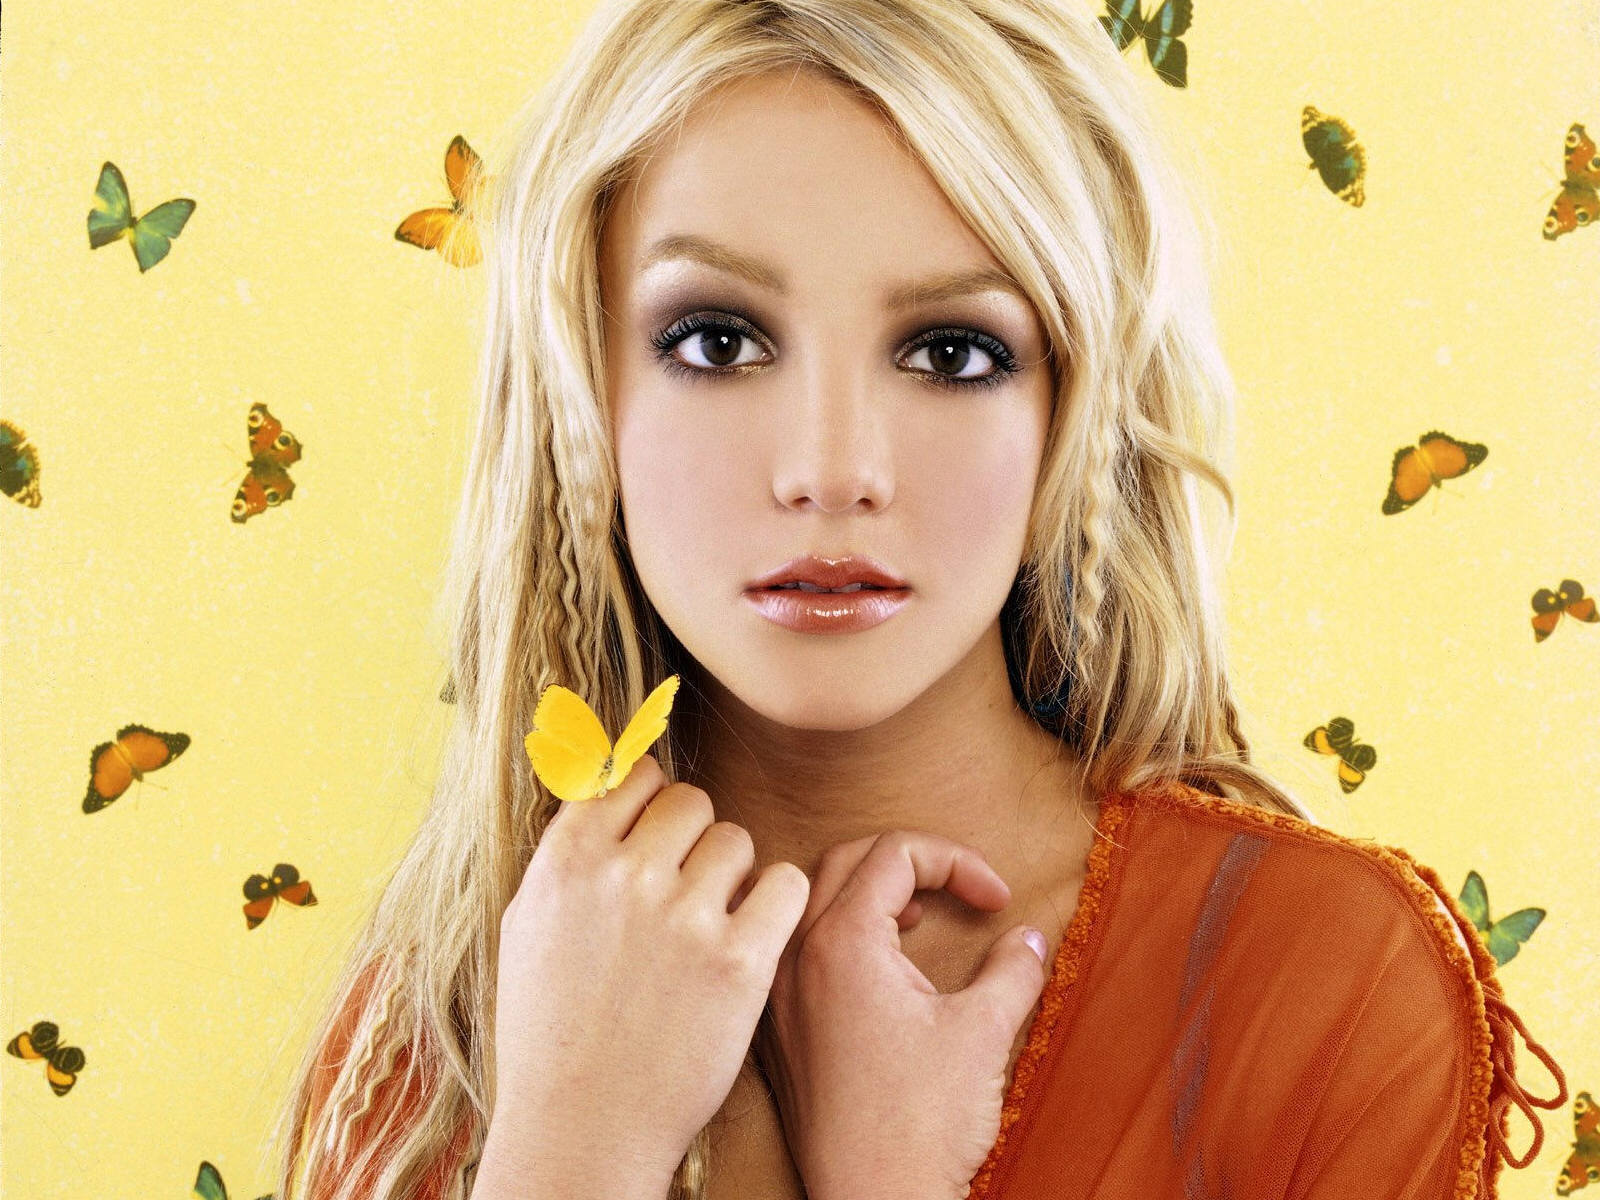 Britney Spears: Britney Spears Wallpapers Britney